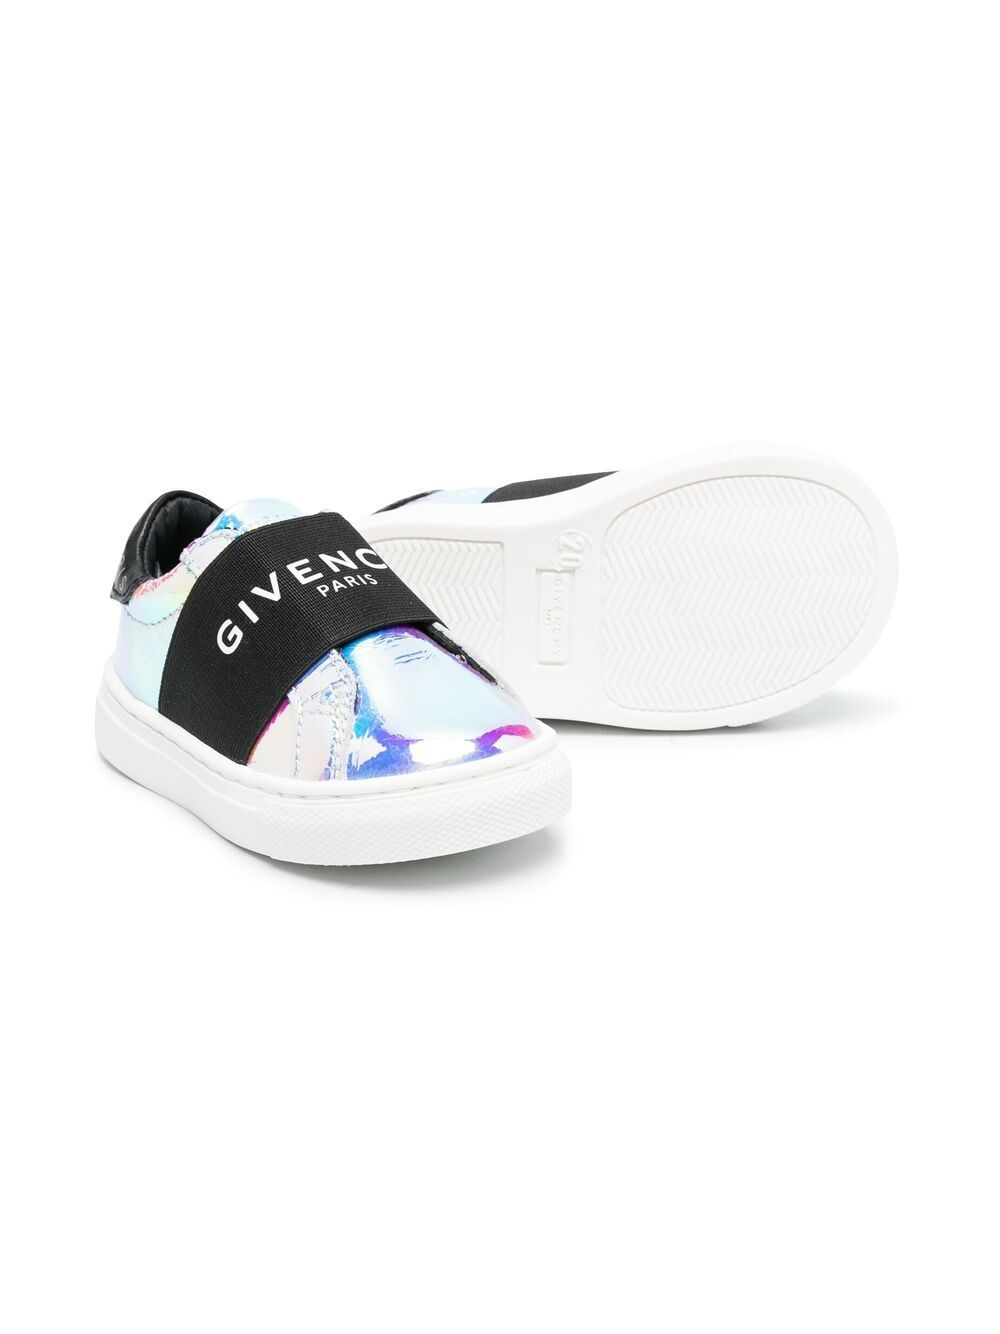 GIVENCHY KIDS Elasticated Strap Logo Sneakers Iridescent